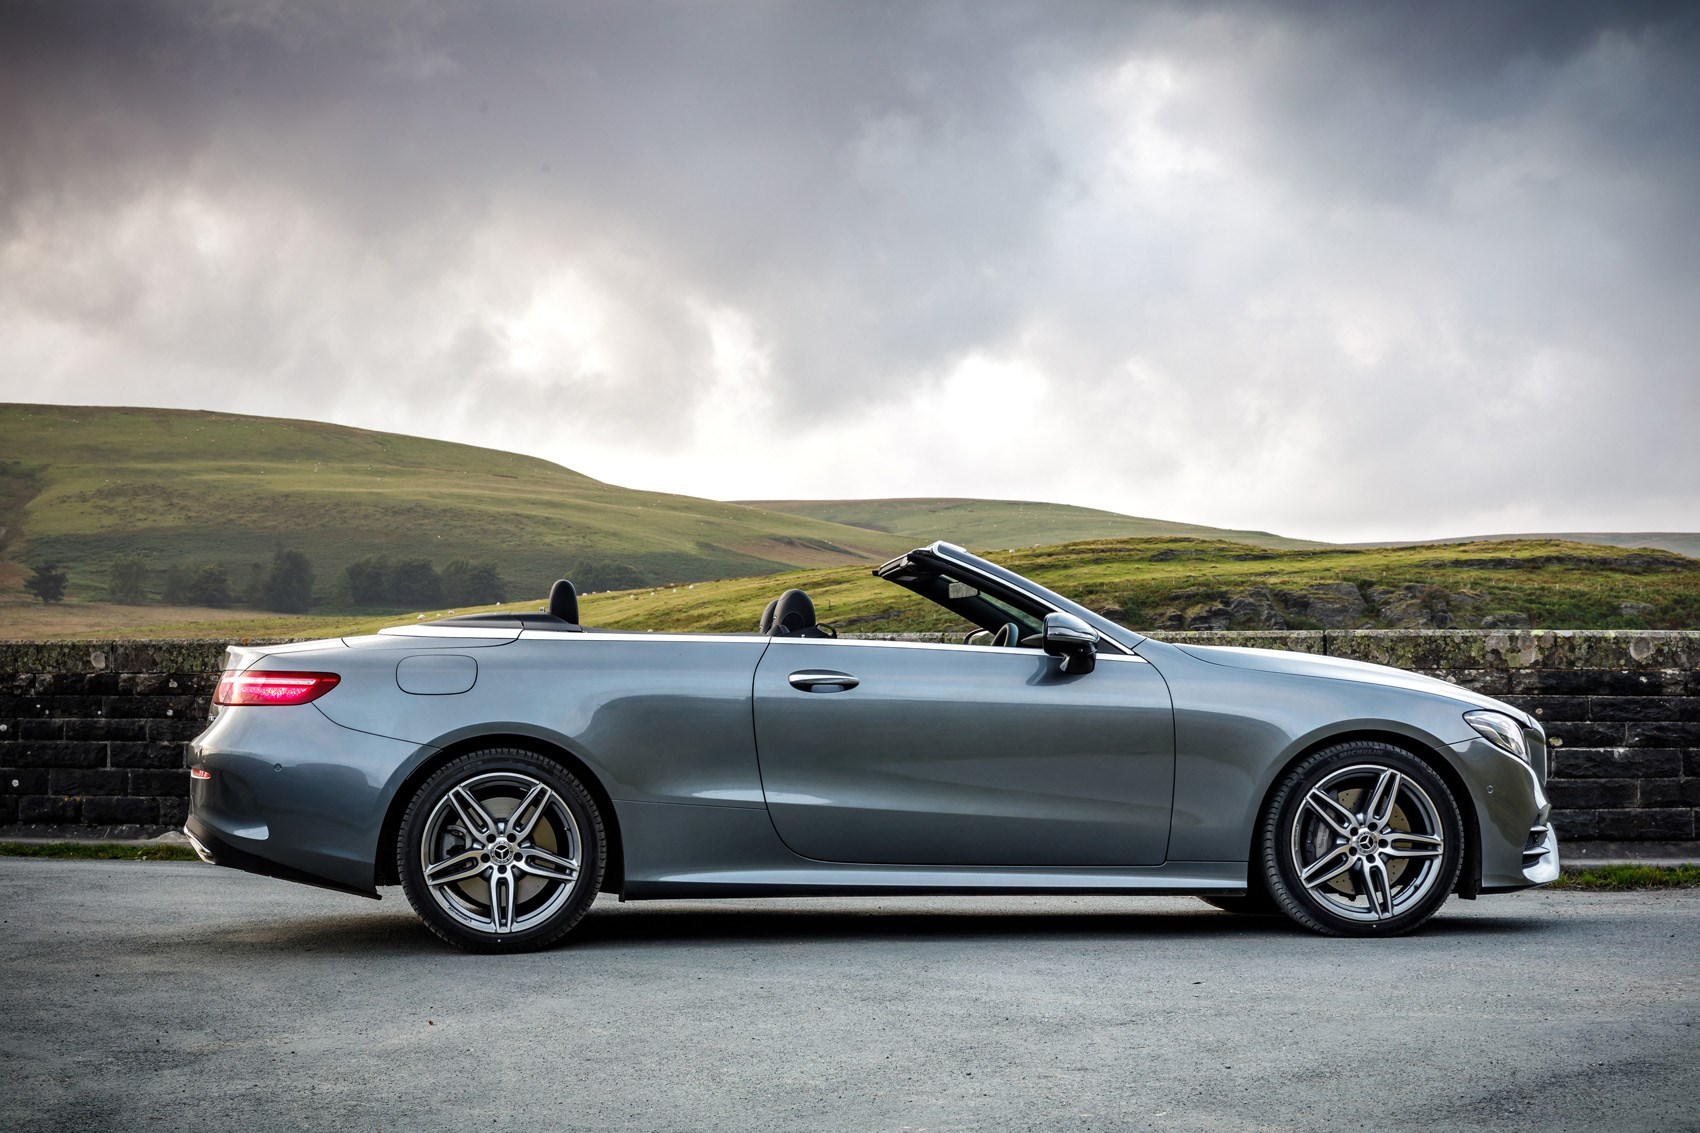 Mercedes Benz E Class Cabriolet review summary